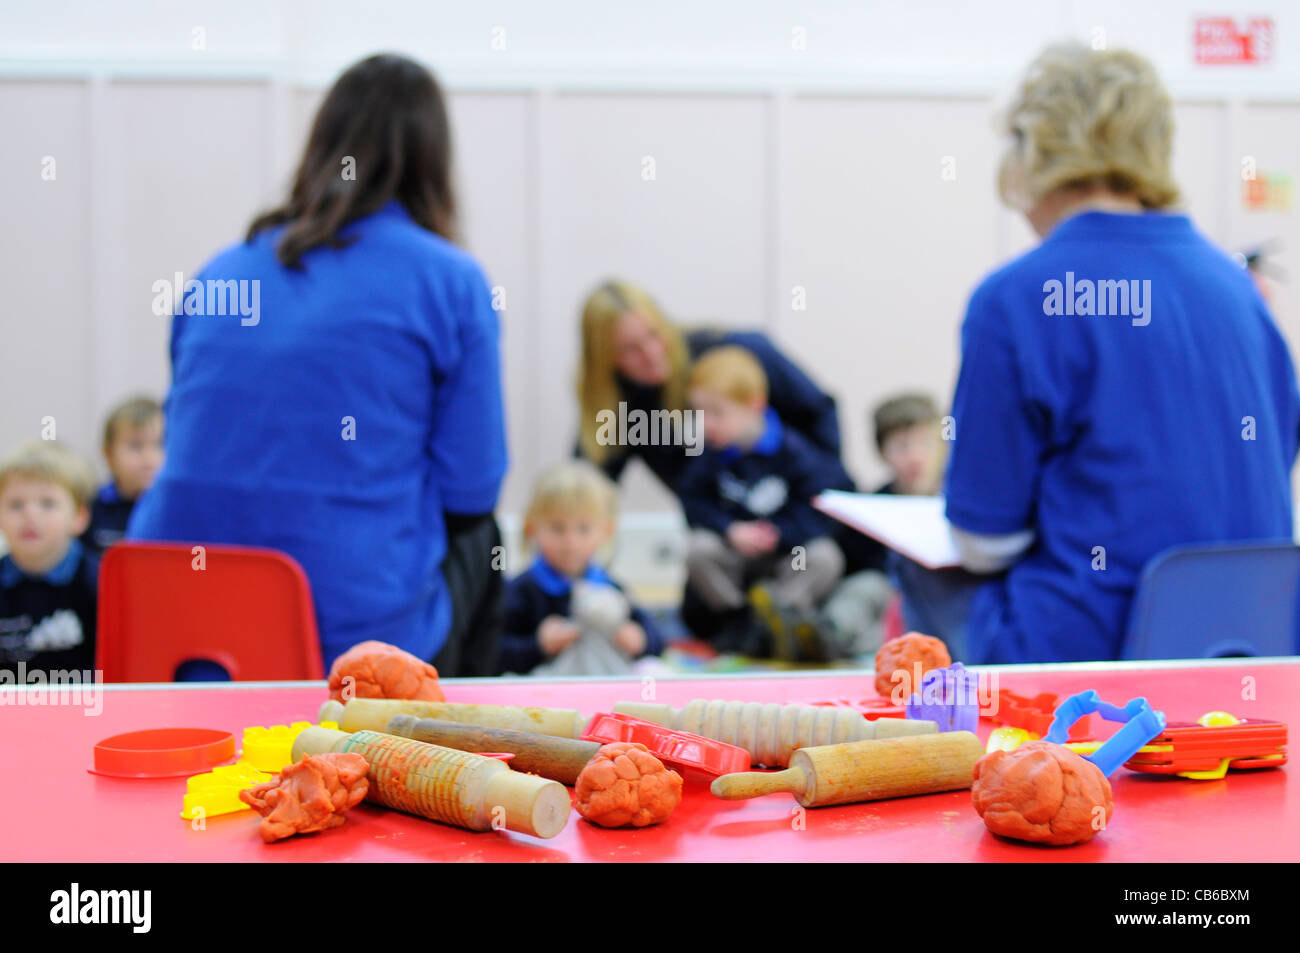 Preschool group UK Children and teachers with activity in foreground. - Stock Image